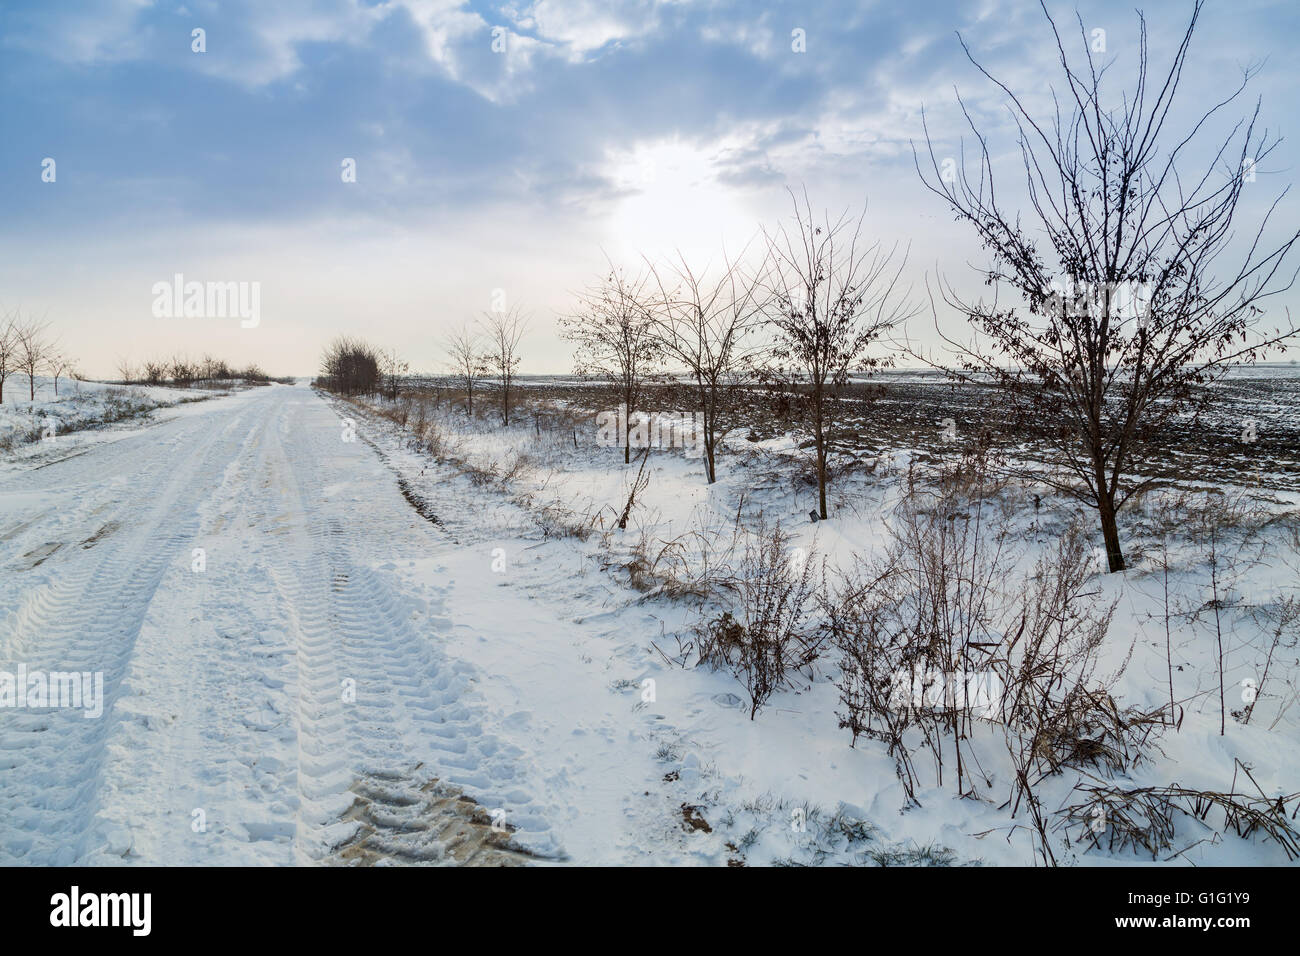 Agricultural road covered in snow - Stock Image